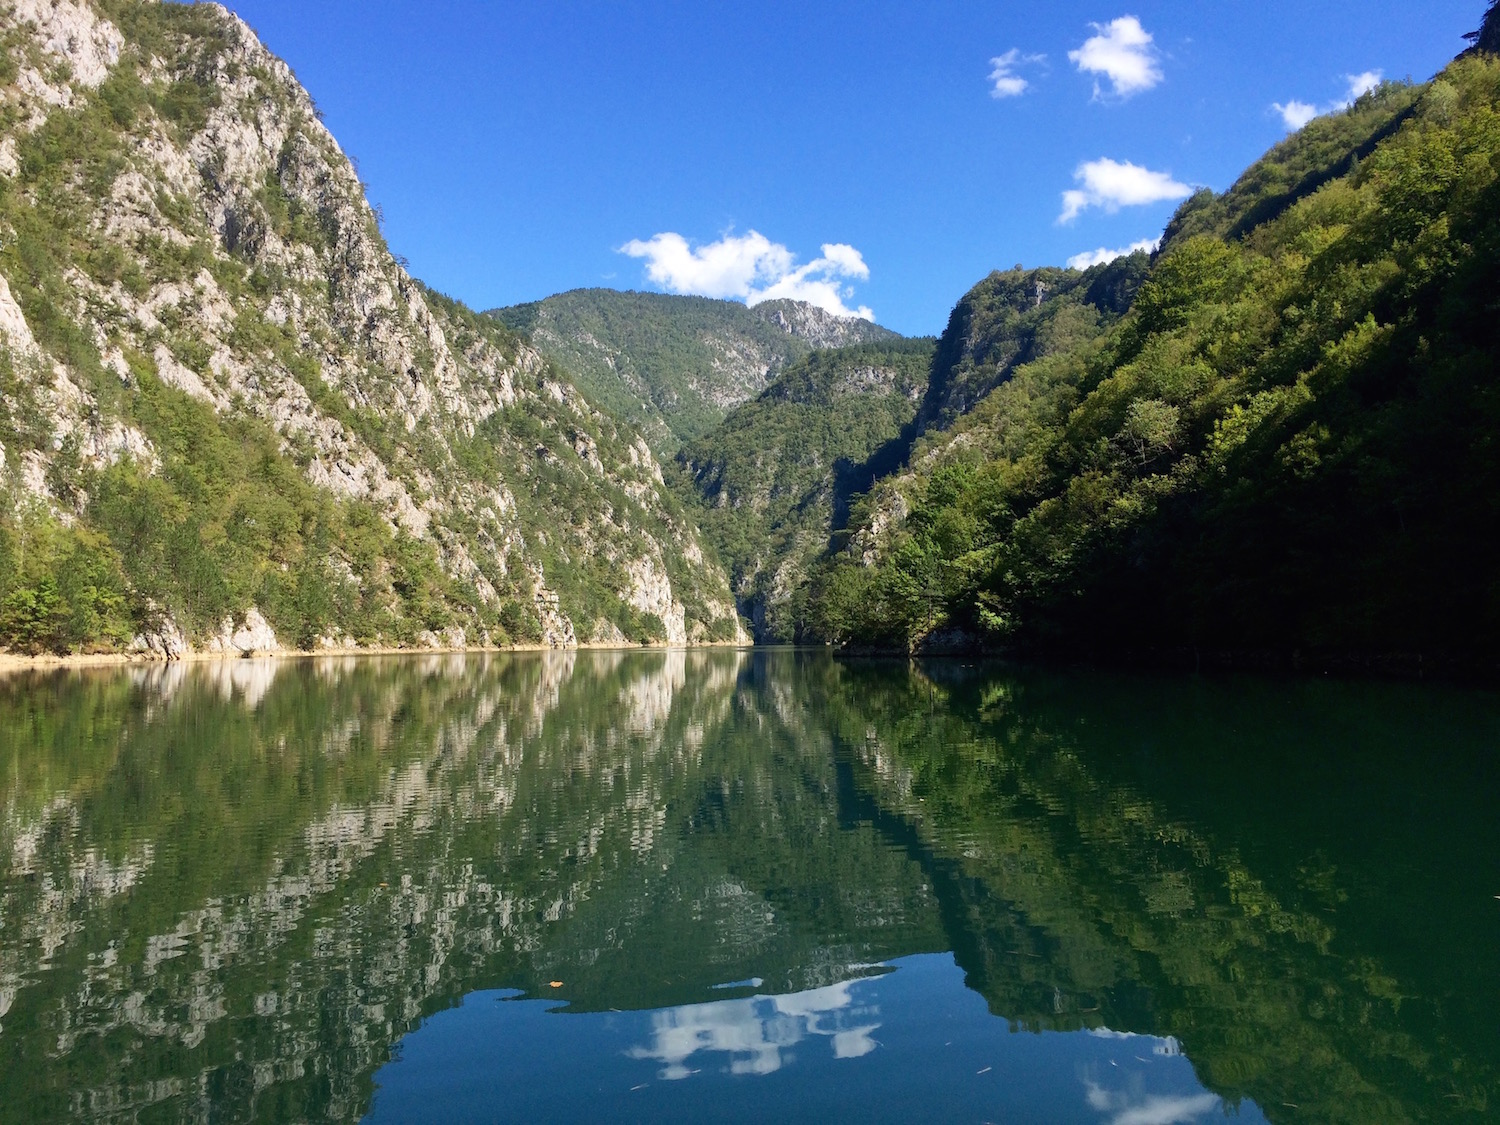 60km through the Drina Canyon – marathon 11 'extra' with the Green Bears in Bosnia